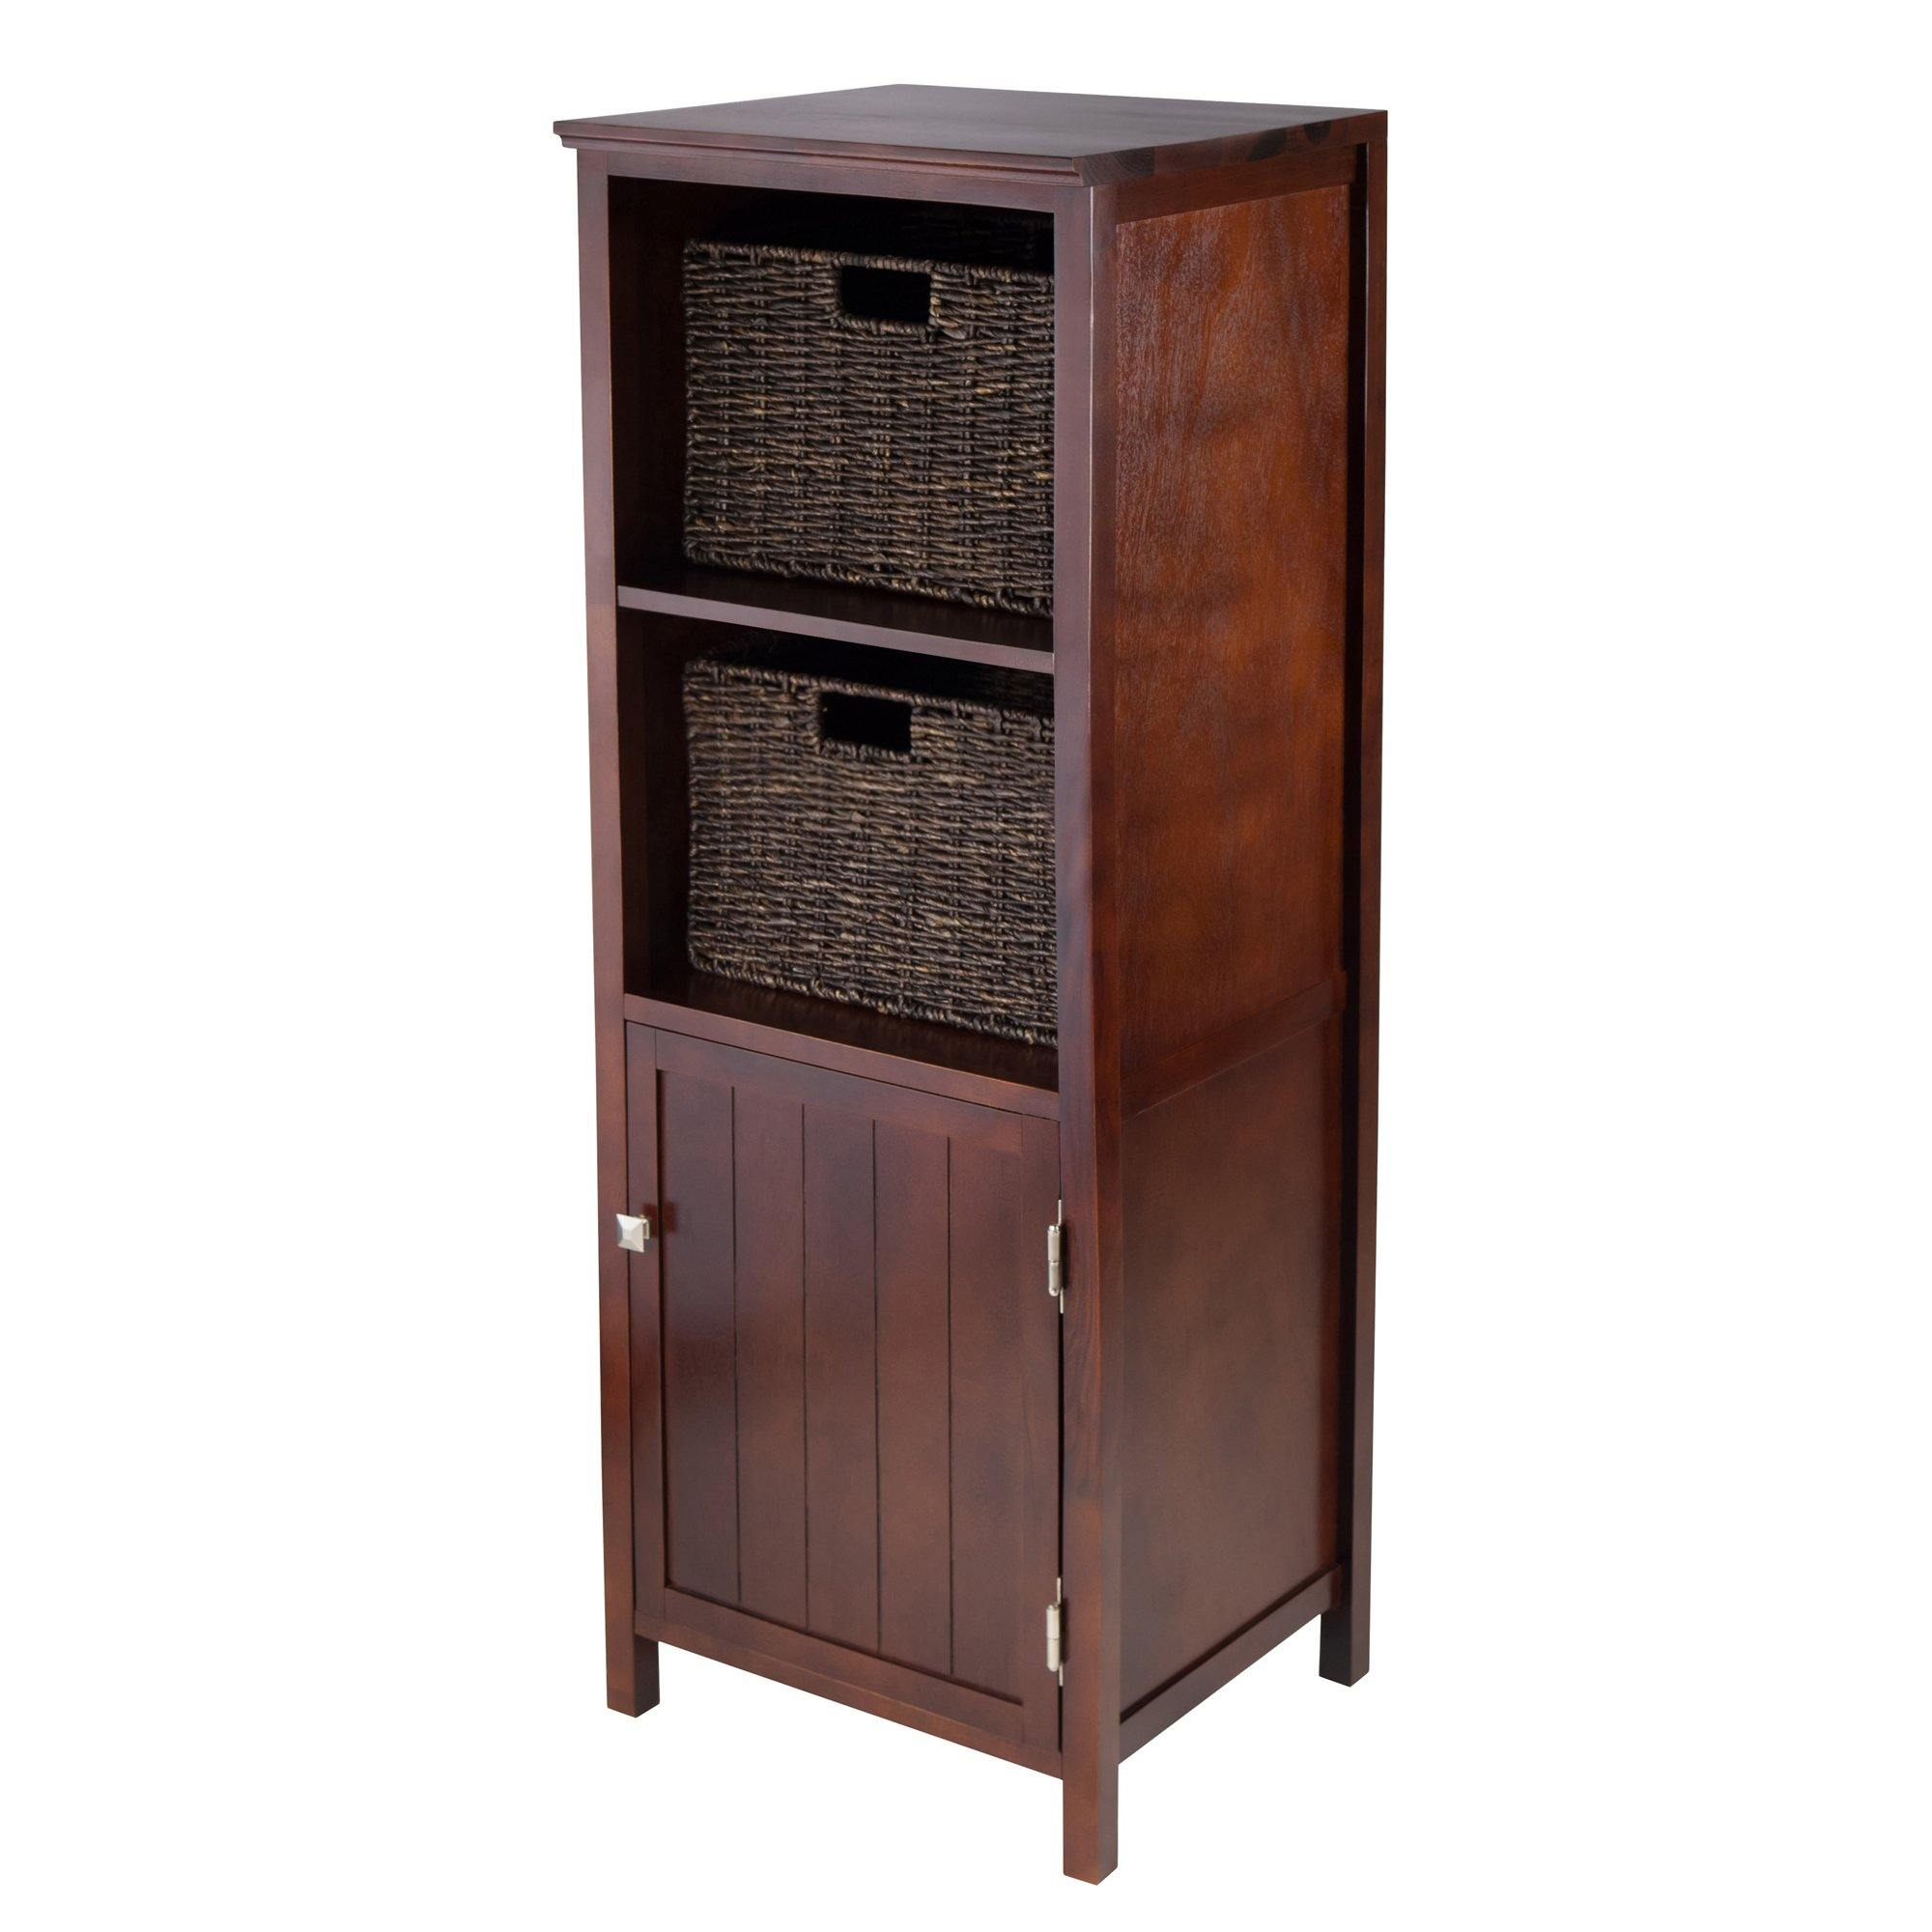 Brooke 3-Pc Set, Jelly Cupboard, 2 Corn Husk Baskets, Walnut - My USA Furniture